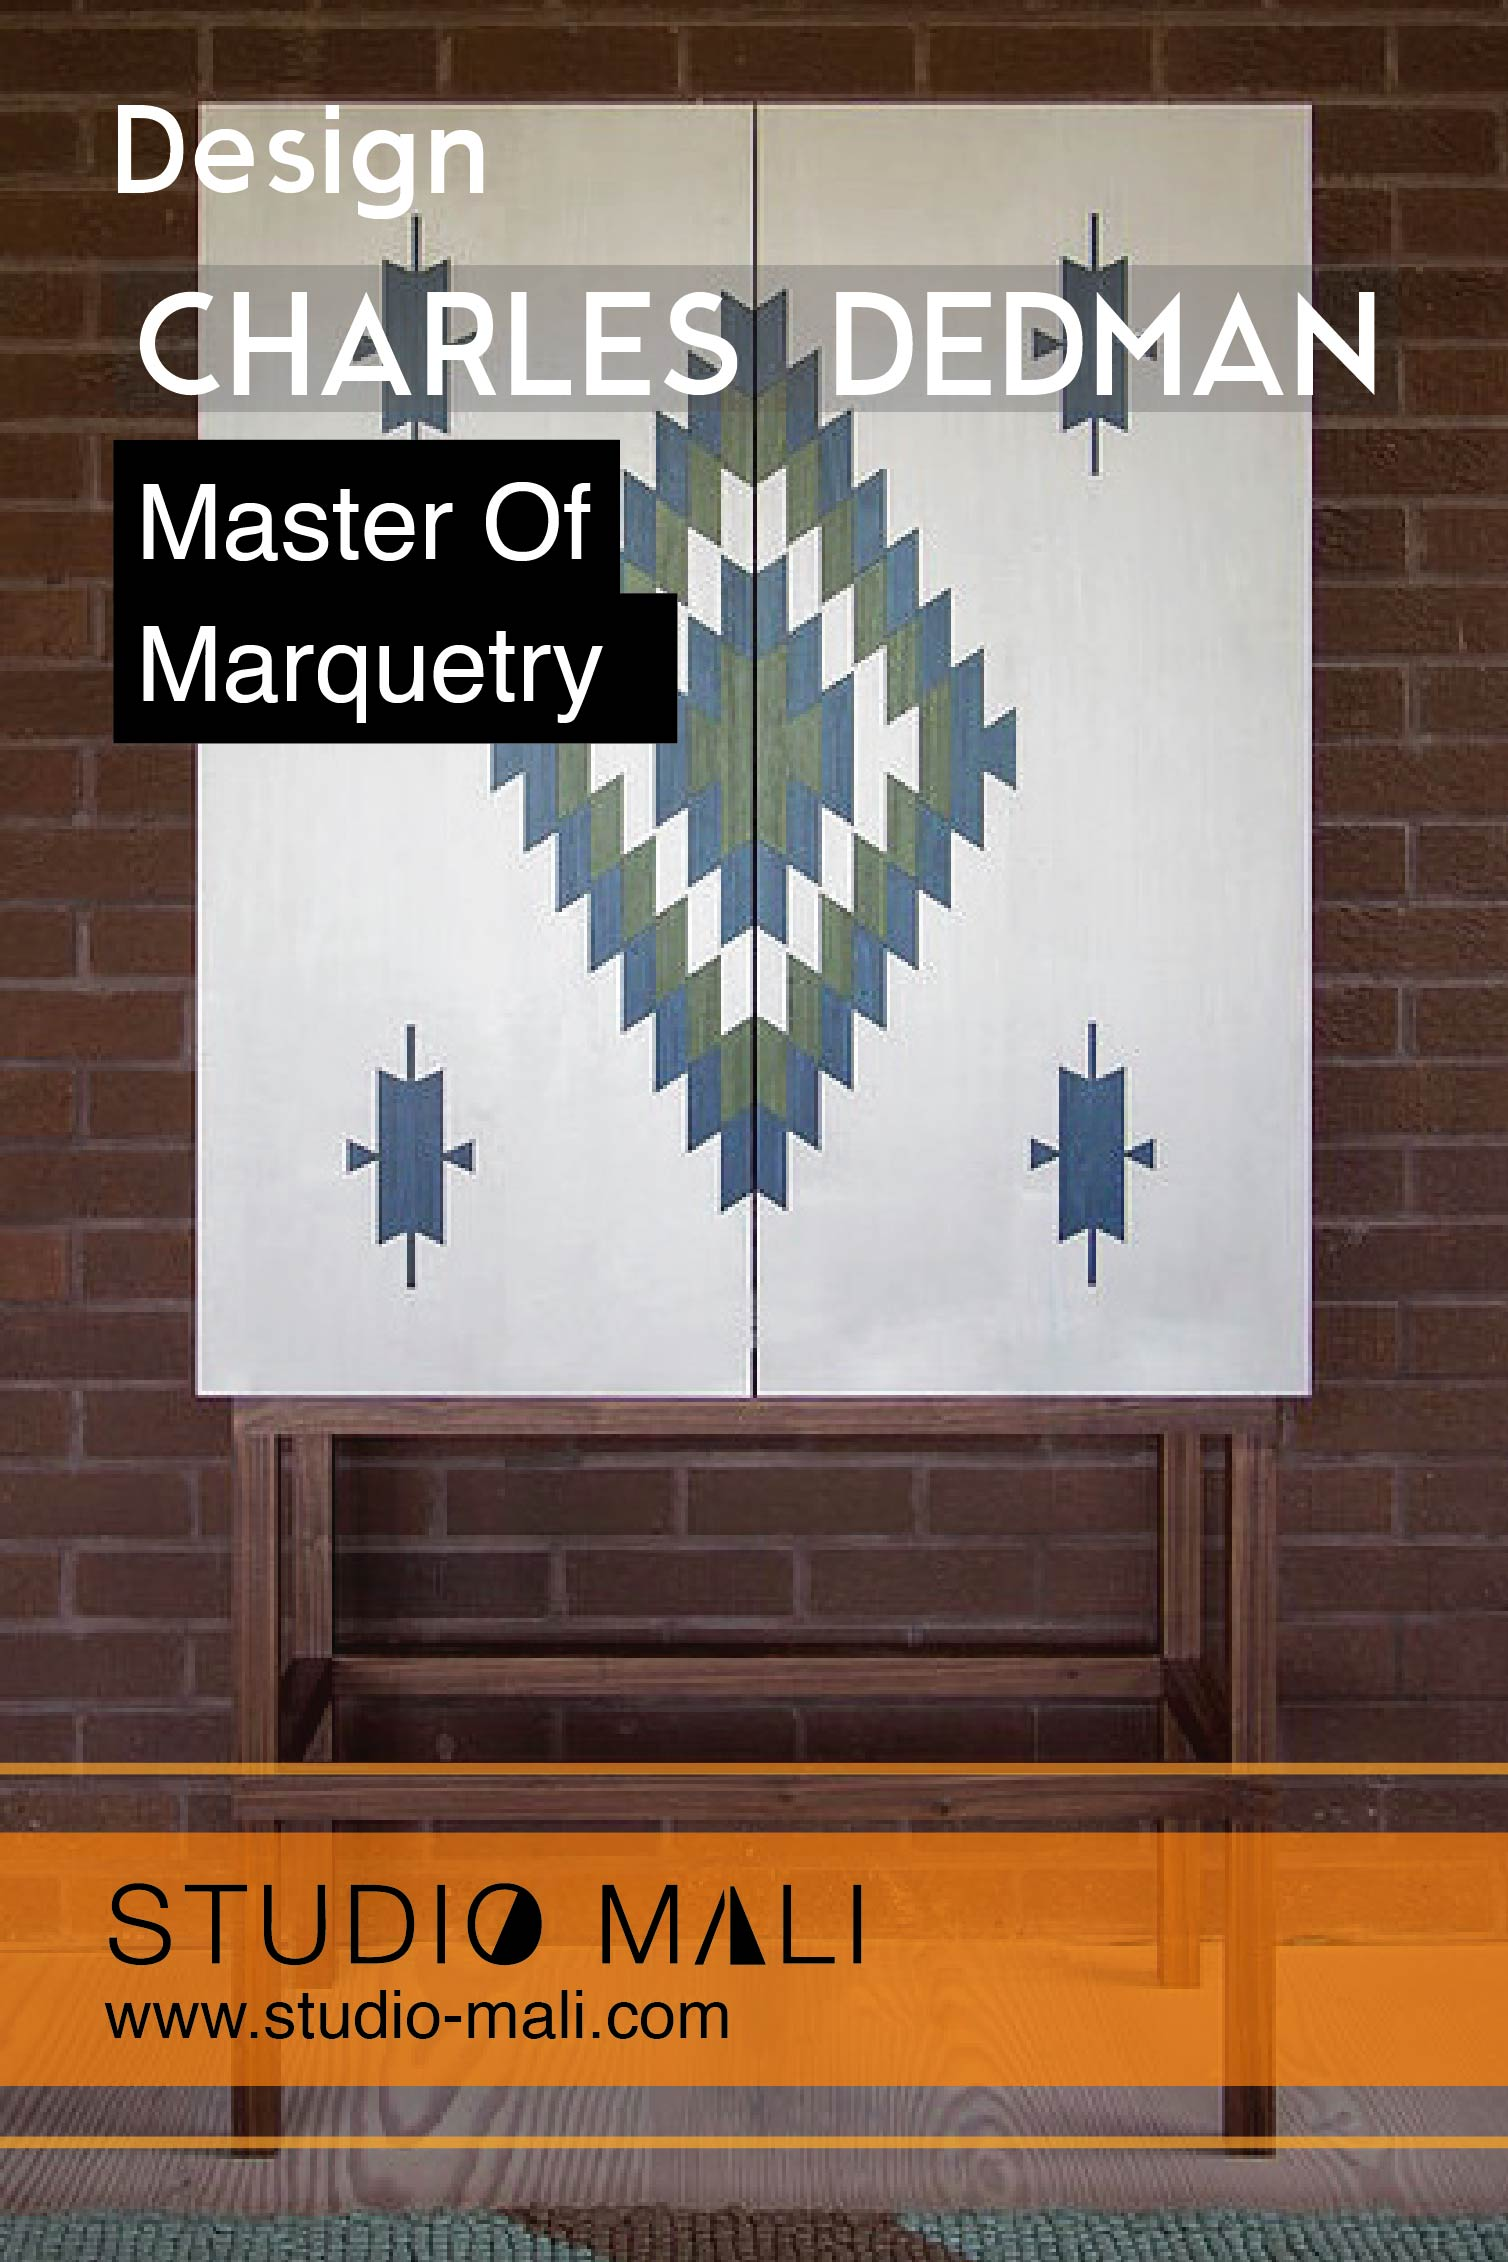 Design: Charles Dedman, Master Of Marquetry, By Studio Mali